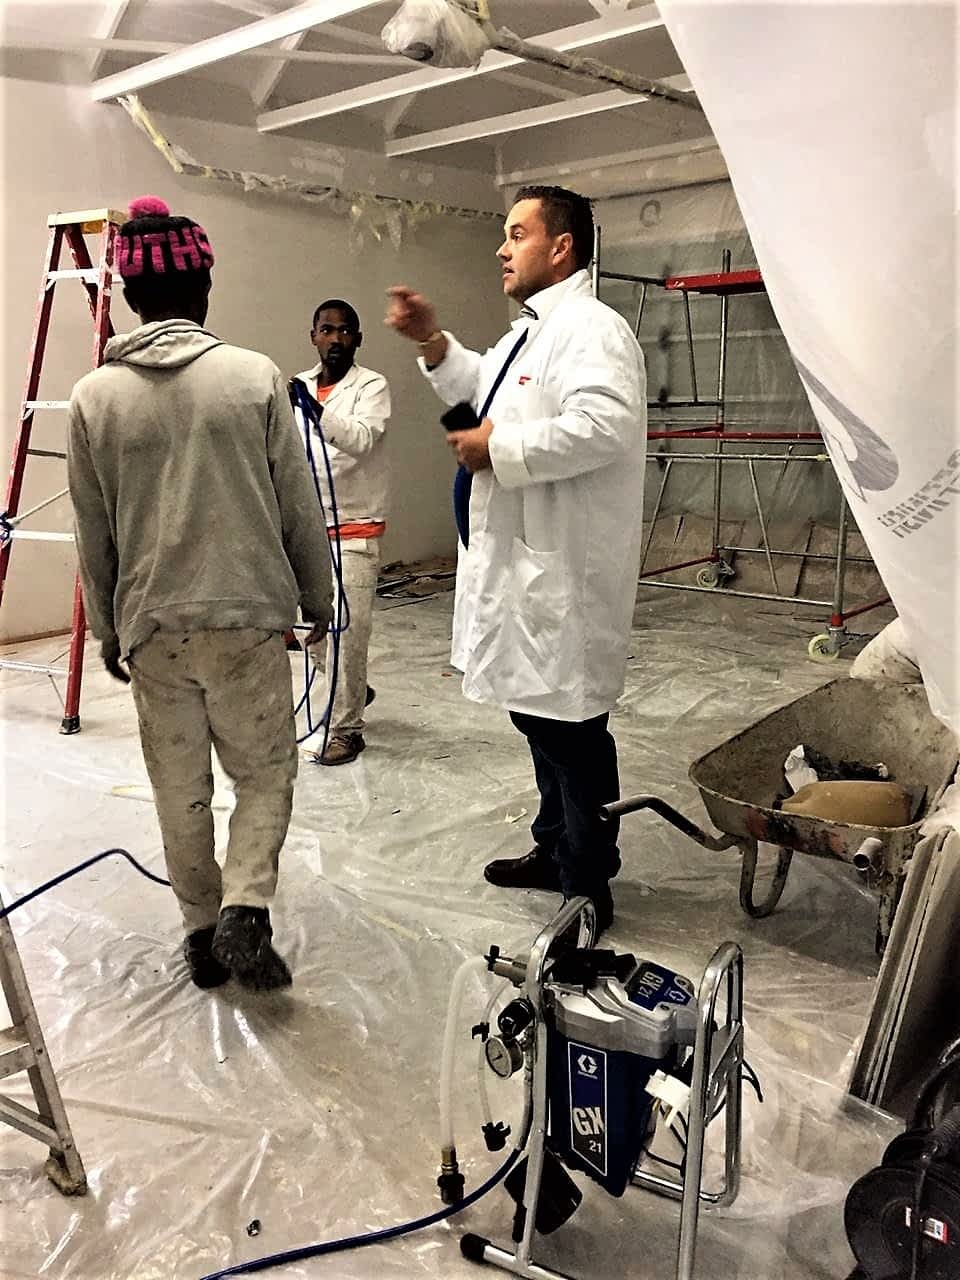 Foreman directs workers Blanca GIS (Pty) Ltd uses Graco Airless Paint Sprayers